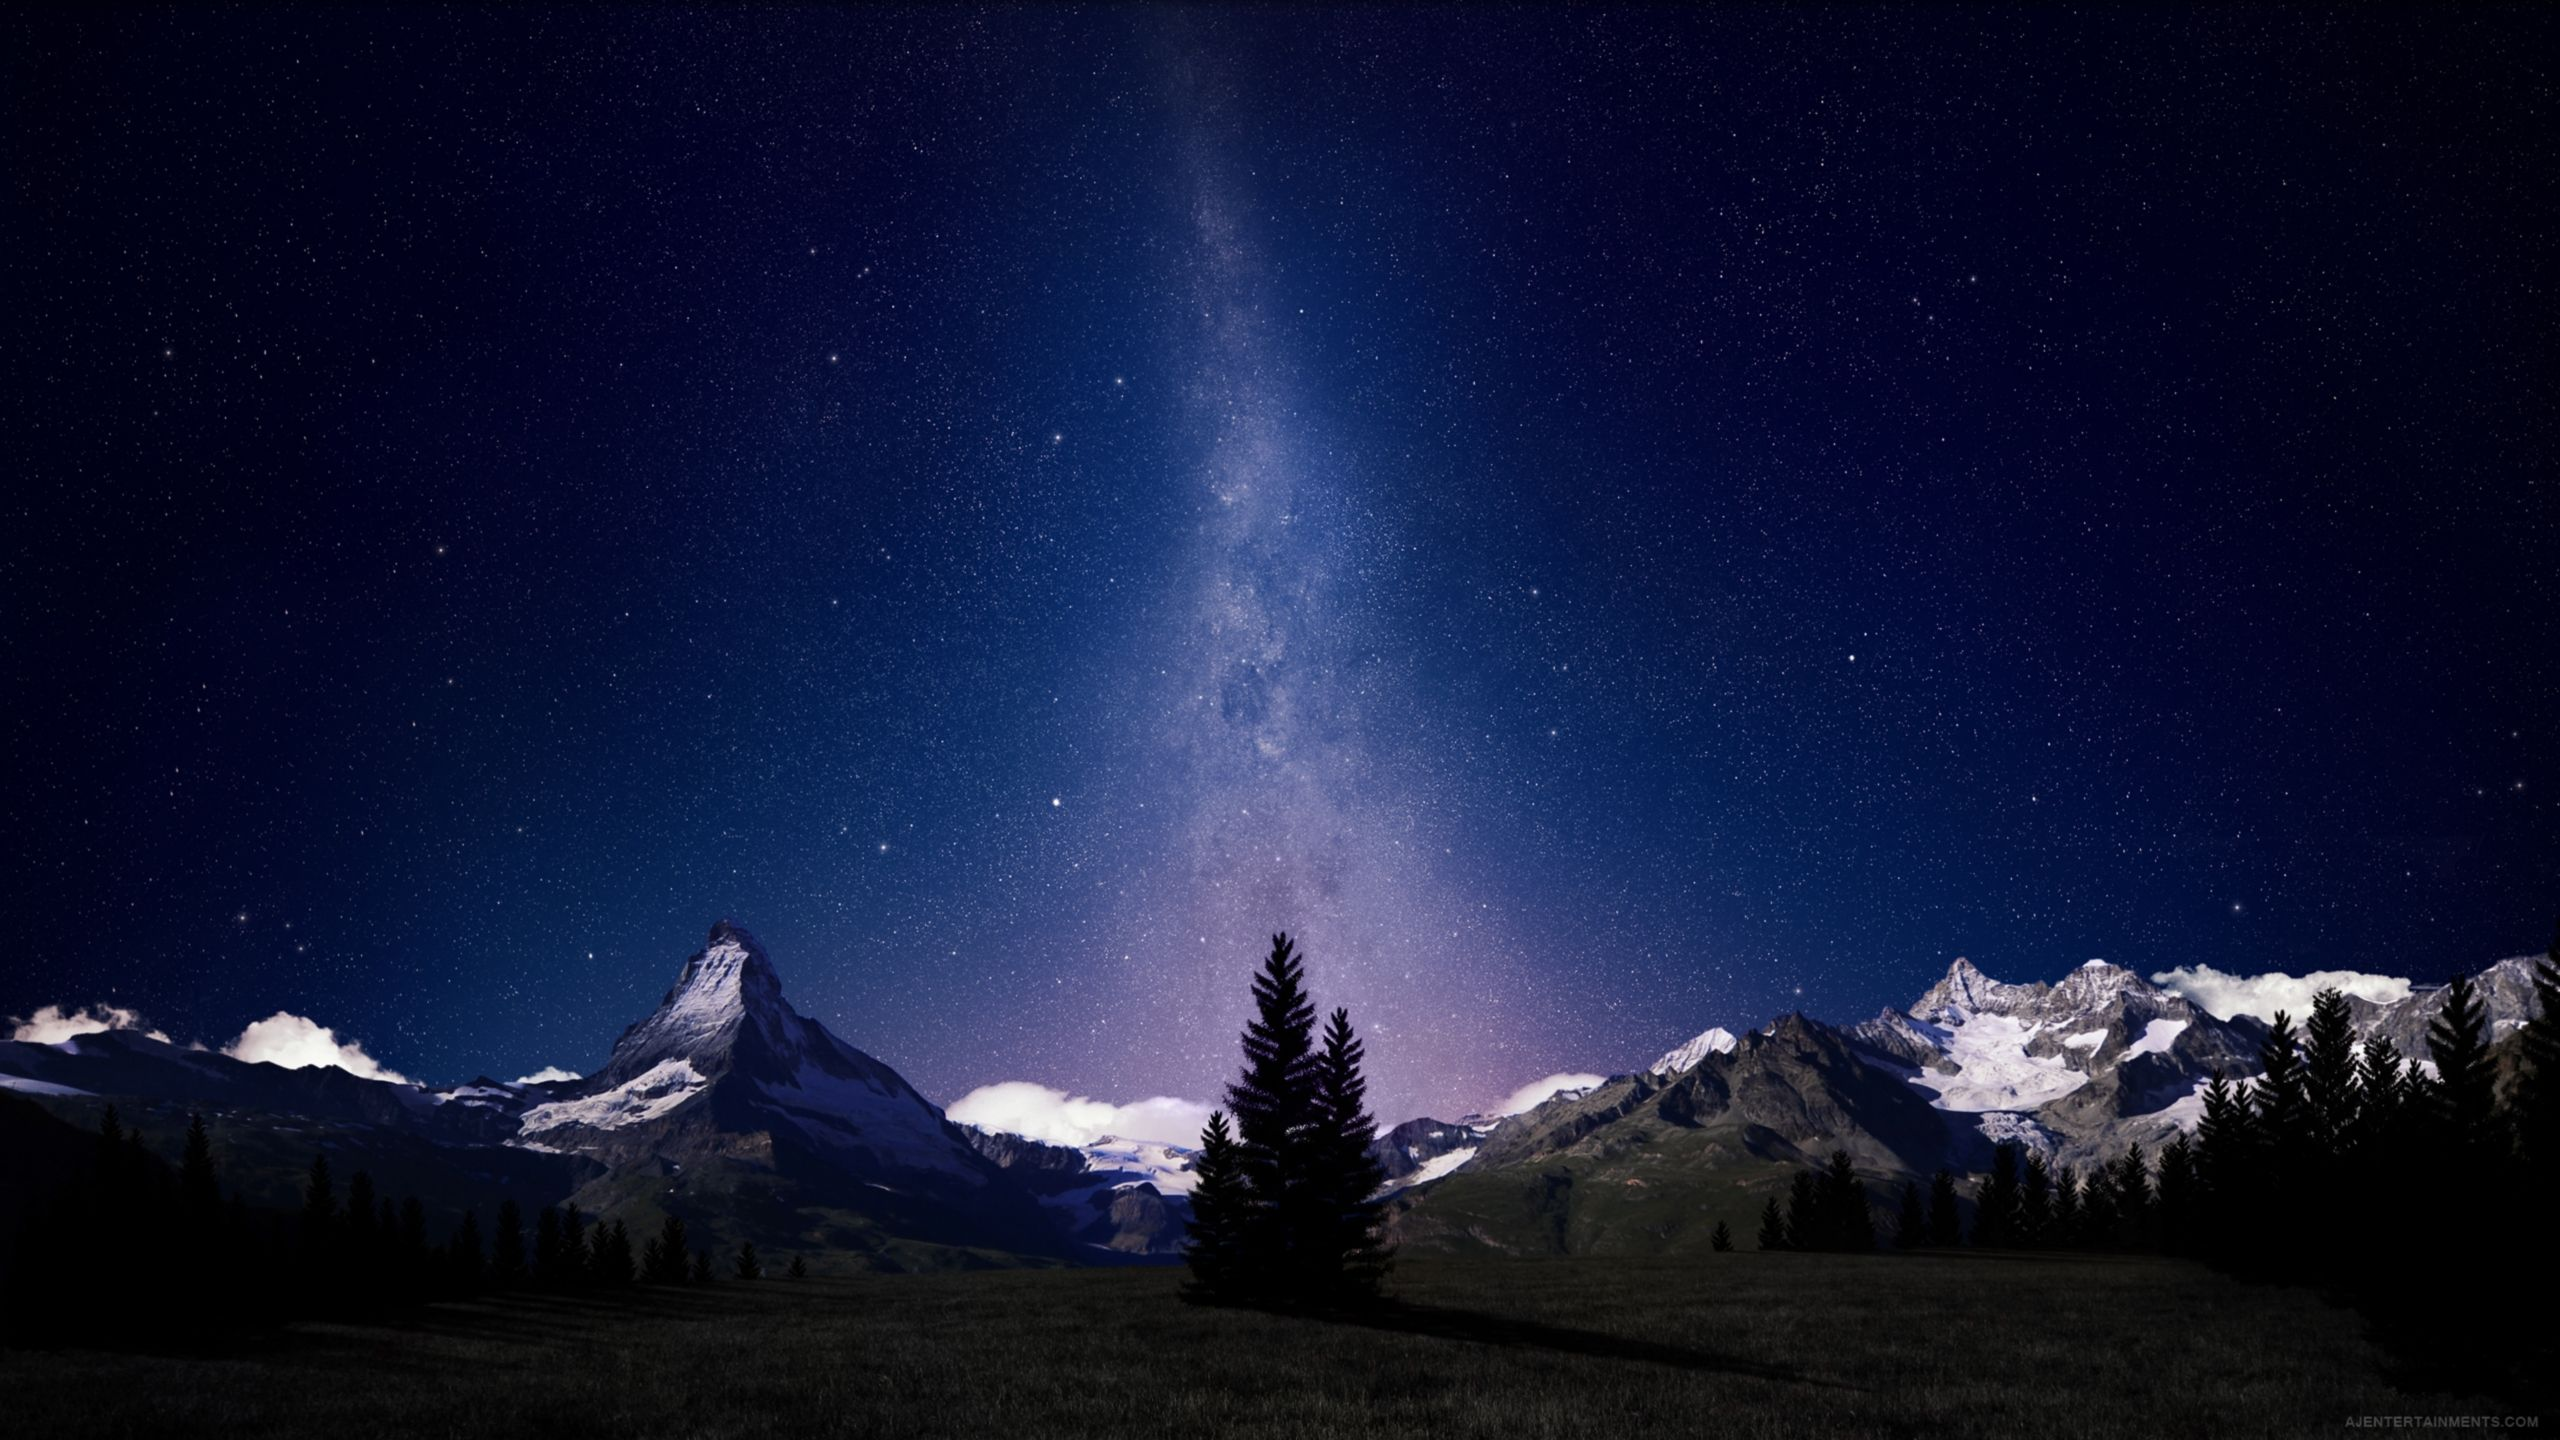 Himalayas At Night Night Sky Wallpaper Beautiful Night Sky Starry Night Background